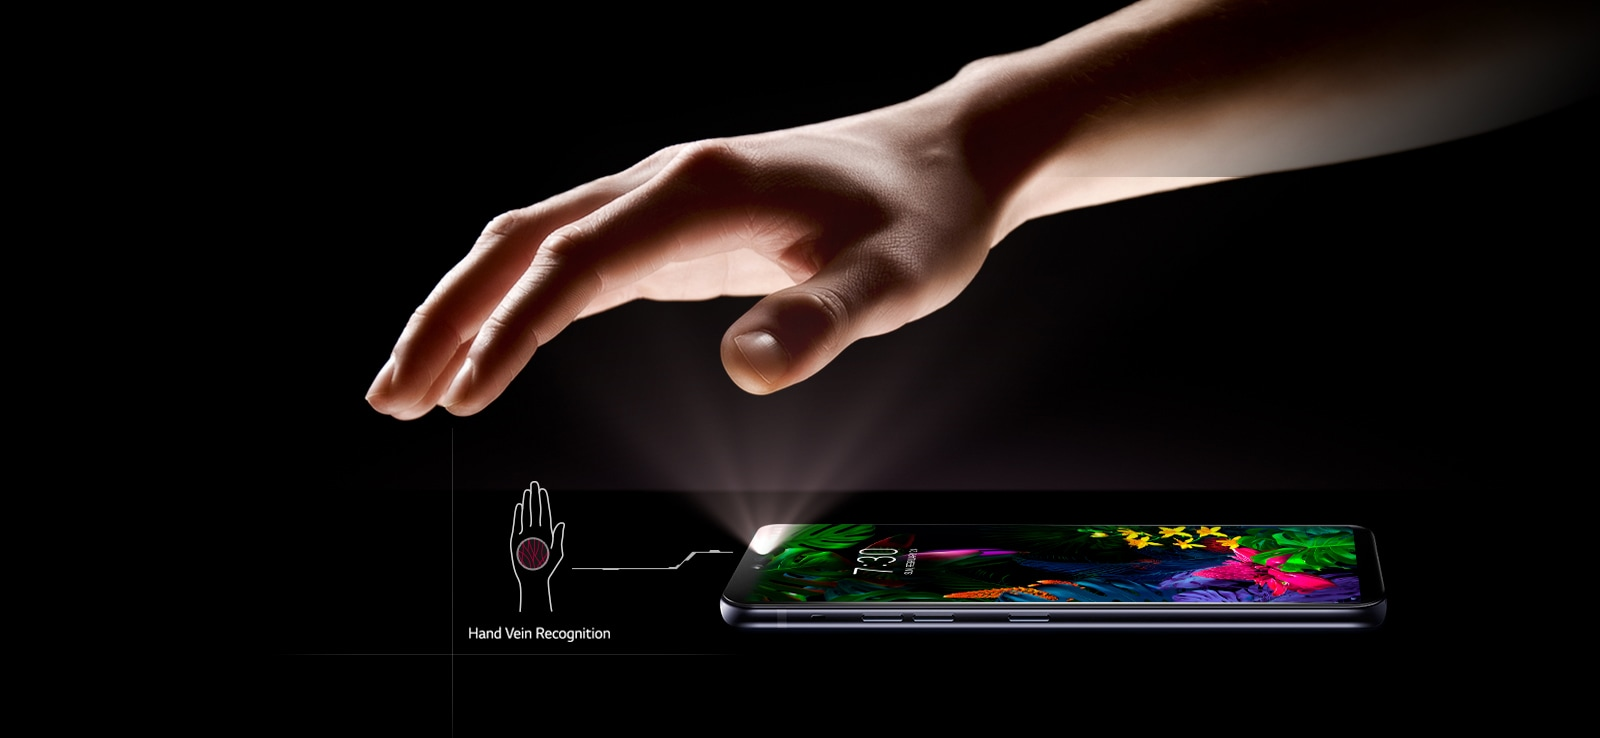 Hand vein recogntion unlocking phone